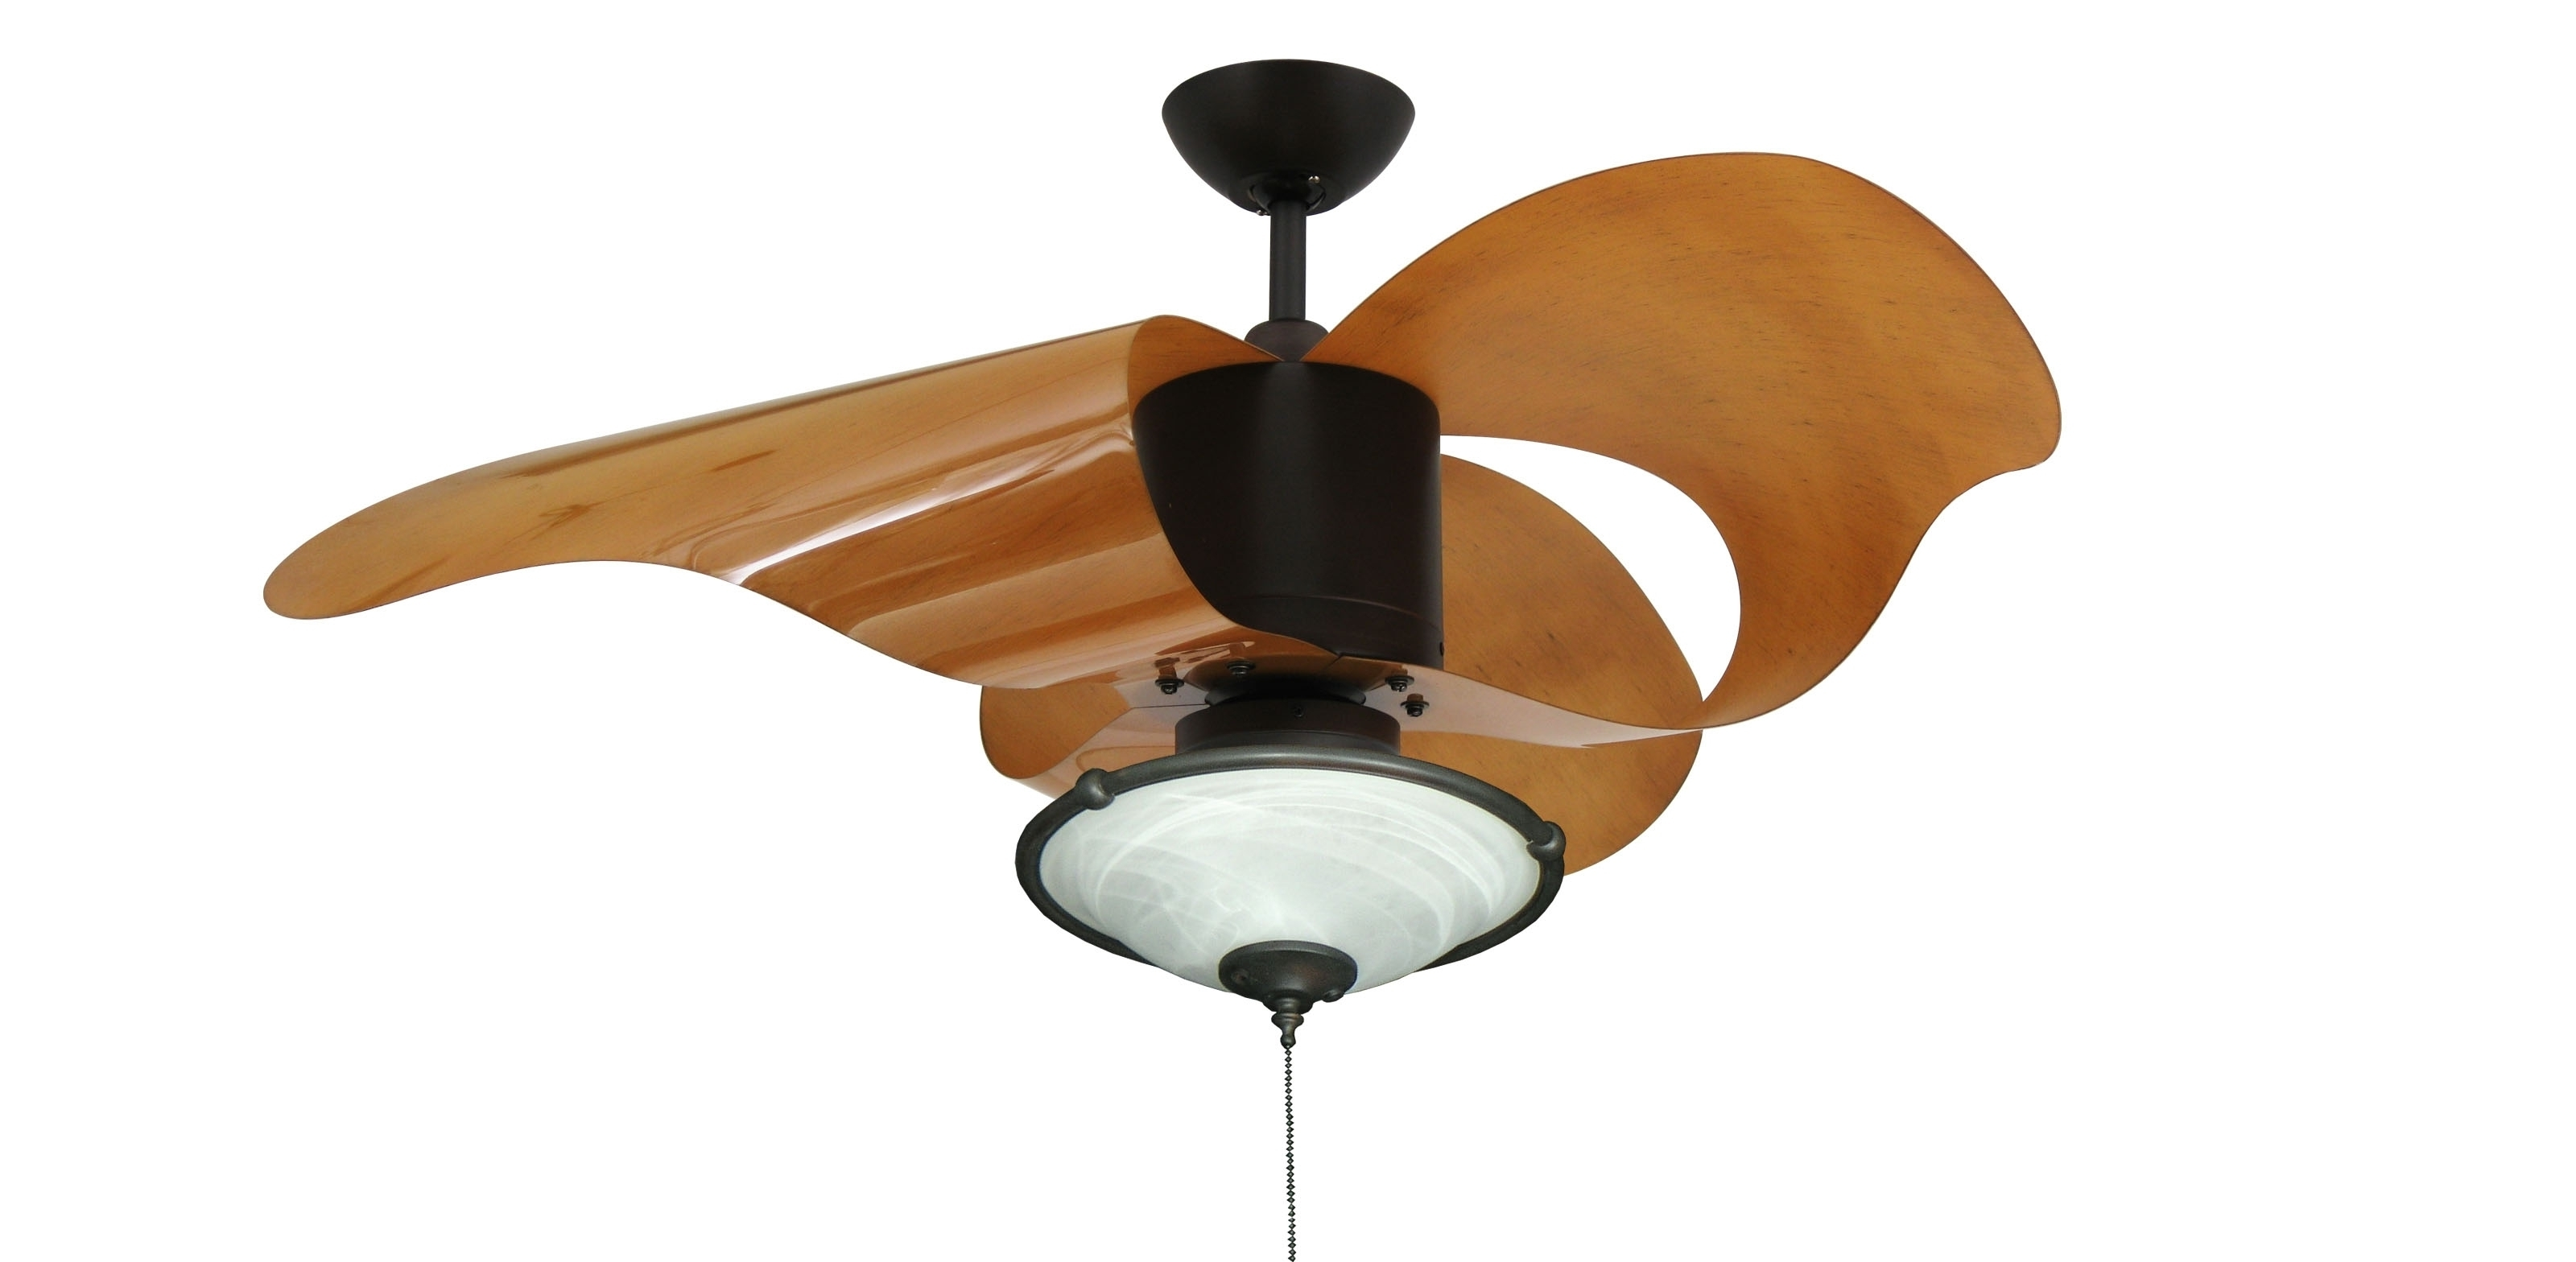 Modern Outdoor Ceiling Fans 52 Antique White Large Room, Modern Pertaining To Favorite Modern Outdoor Ceiling Fans With Lights (View 6 of 20)